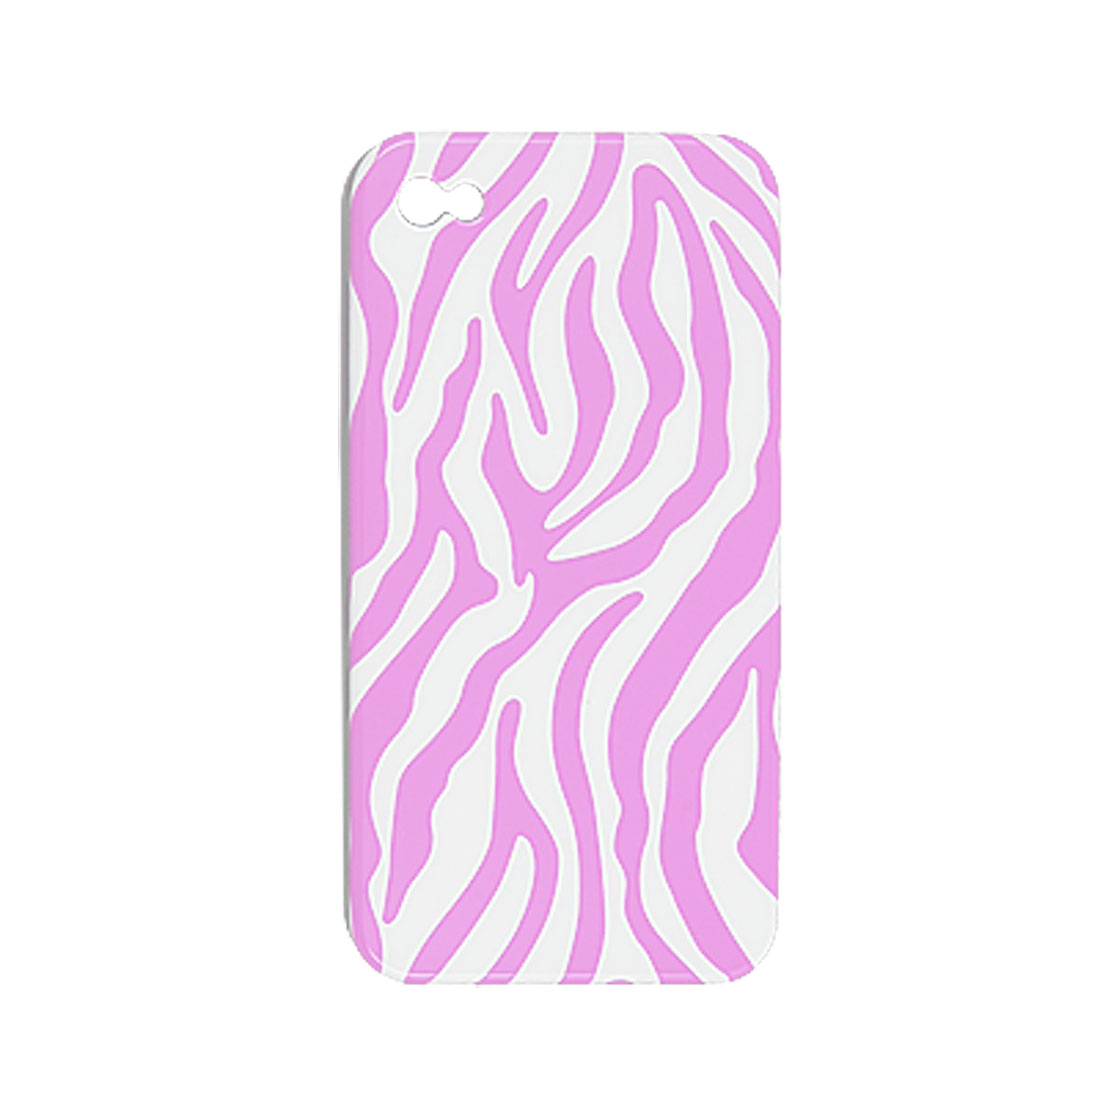 Ultra Pink Zebra Style Hard Back Case Shell for iPhone 4 4G